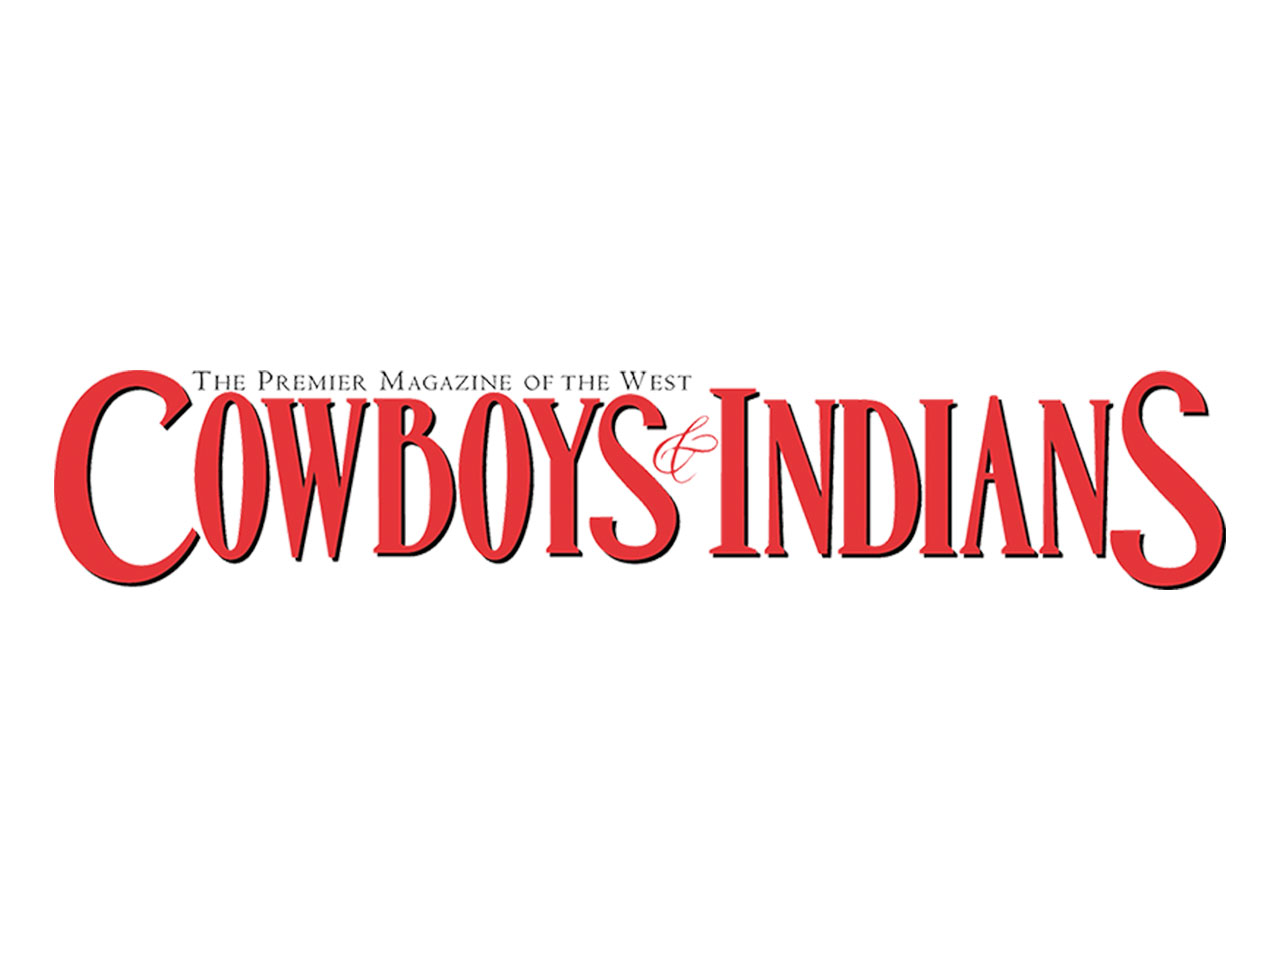 [COWBOYS & INDIANS] Rodeo Preview: Red Bluff Round-Up